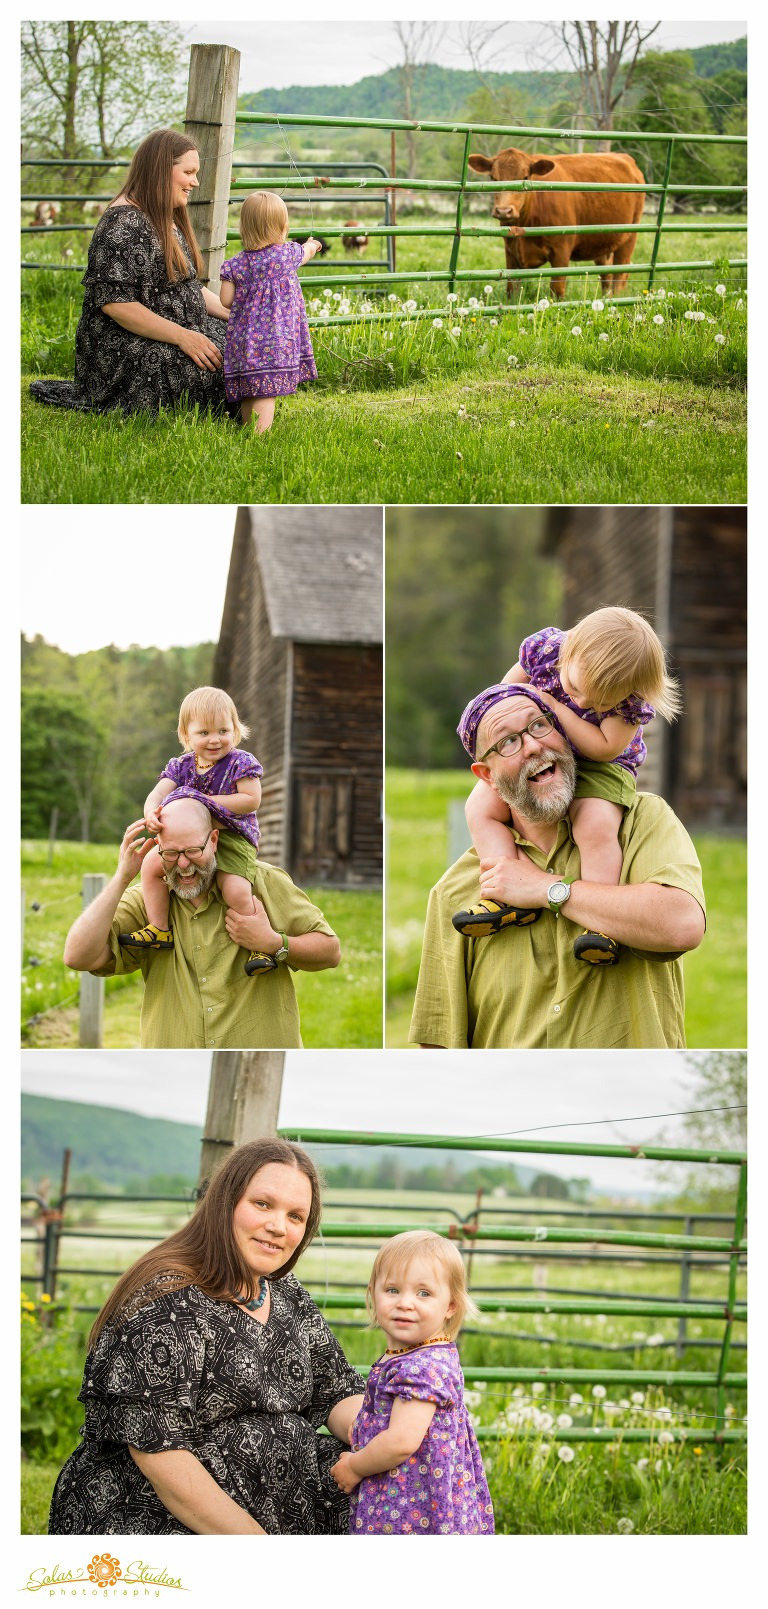 Solas-Studios-Photography-Family-Engagement-Session-Cherry-Valley-4